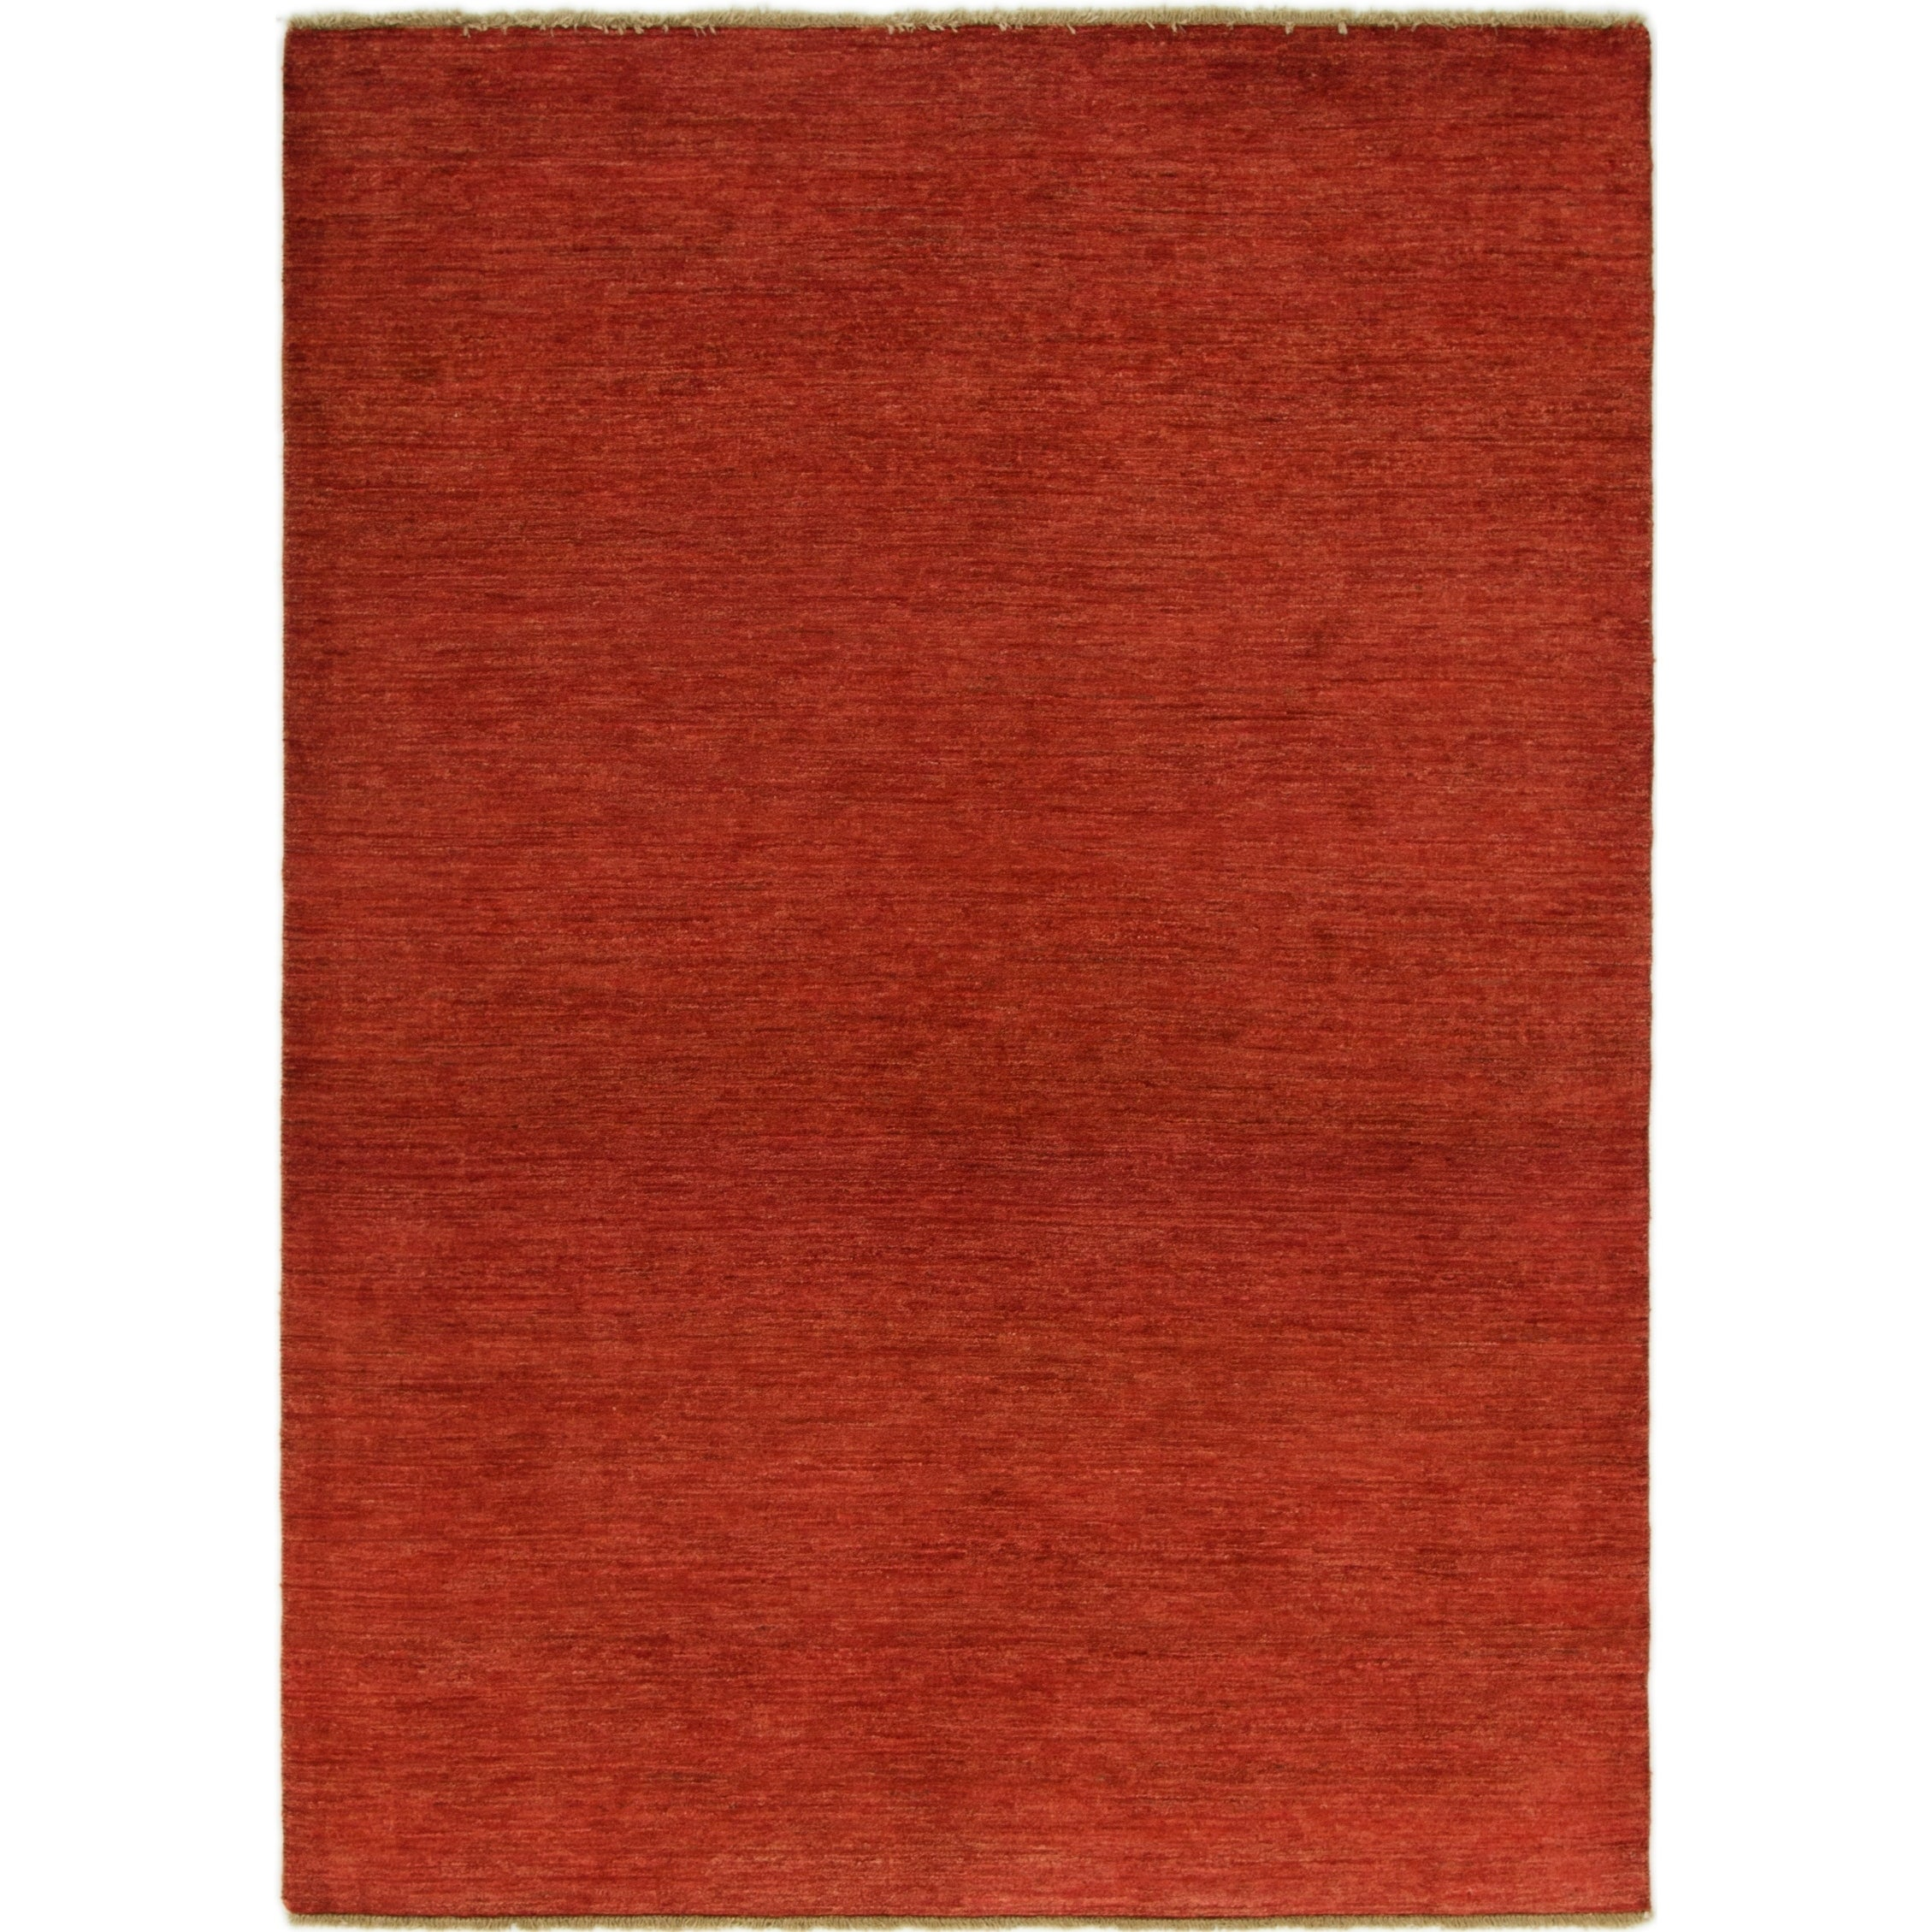 Hand Knotted Kashkuli Gabbeh Wool Area Rug - 5 9 x 8 (Red - 5 9 x 8)